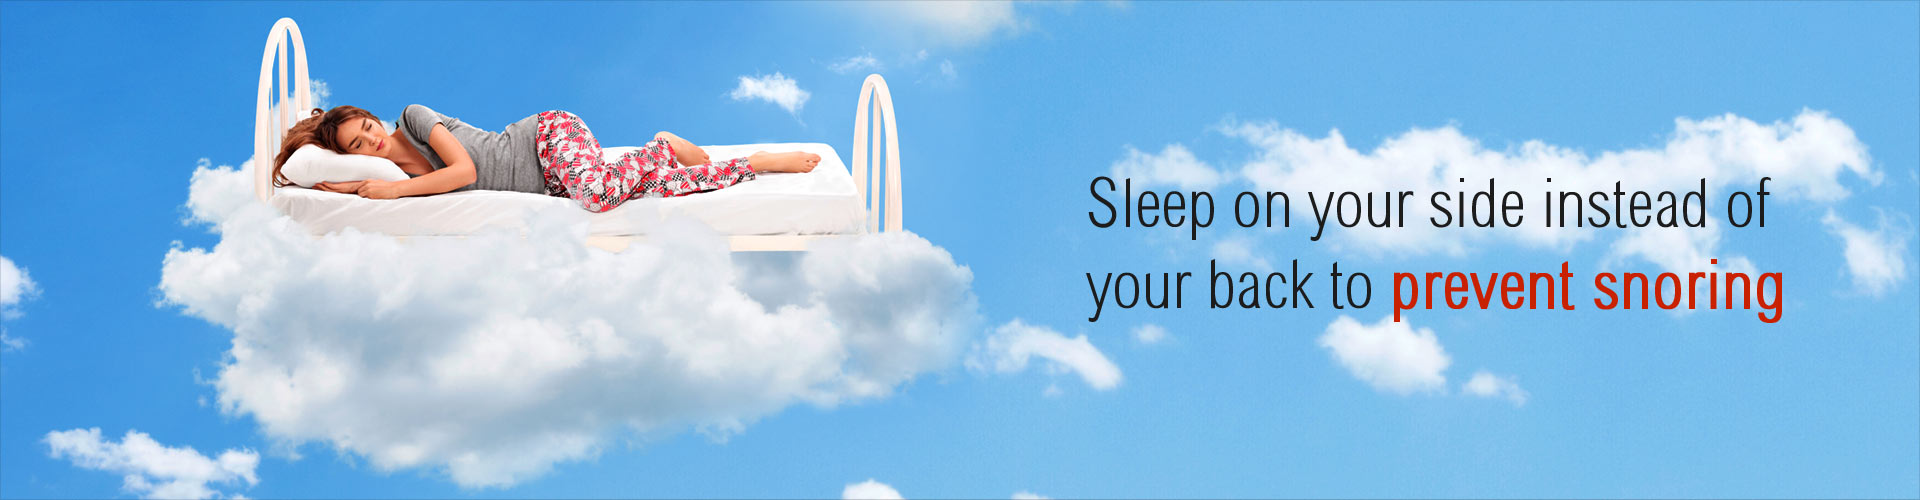 Sleep on your side instead of your back to prevent snoring